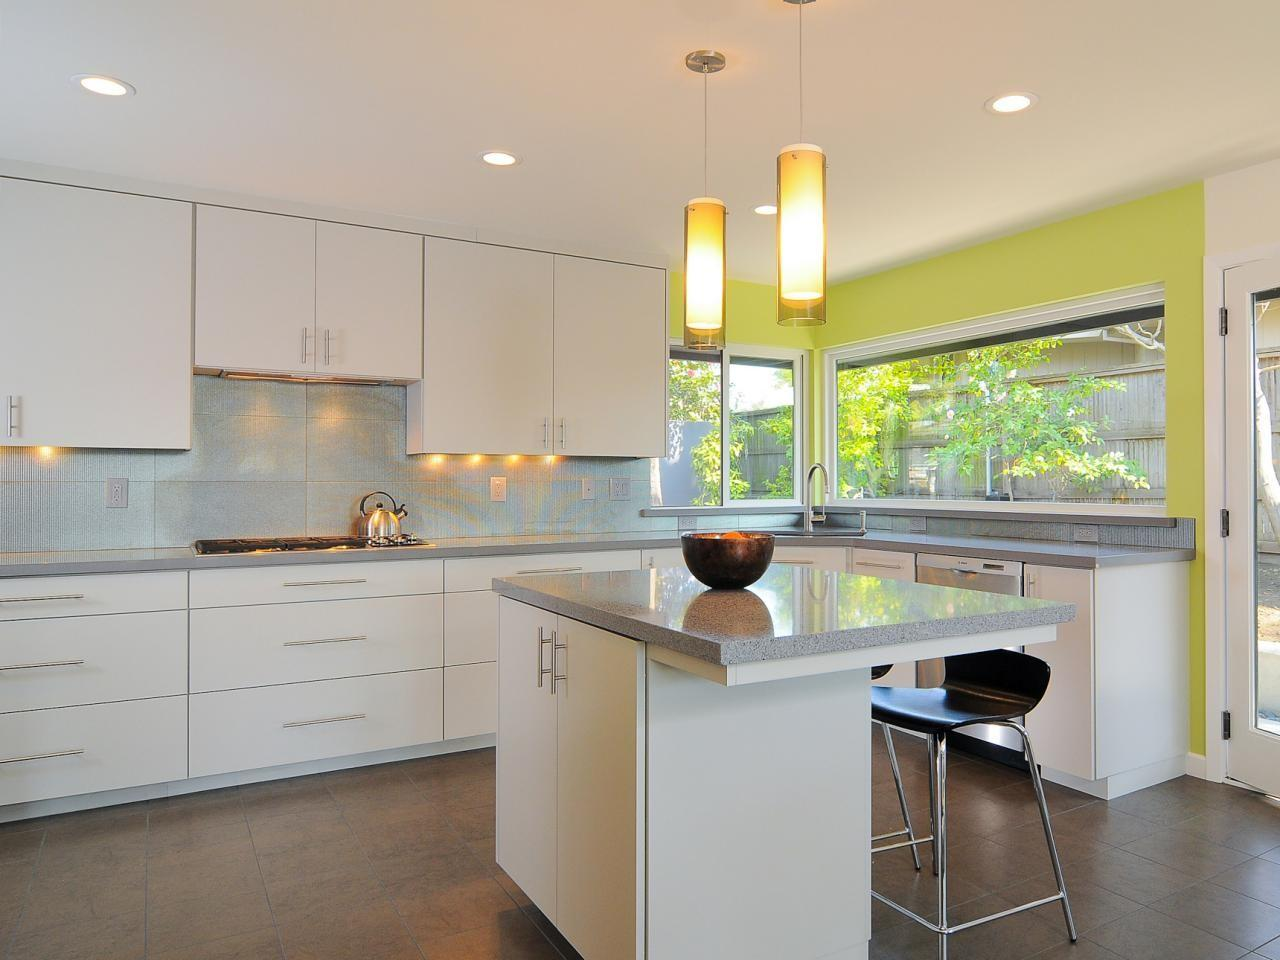 Kitchen Cabinet Design Ideas Options Tips